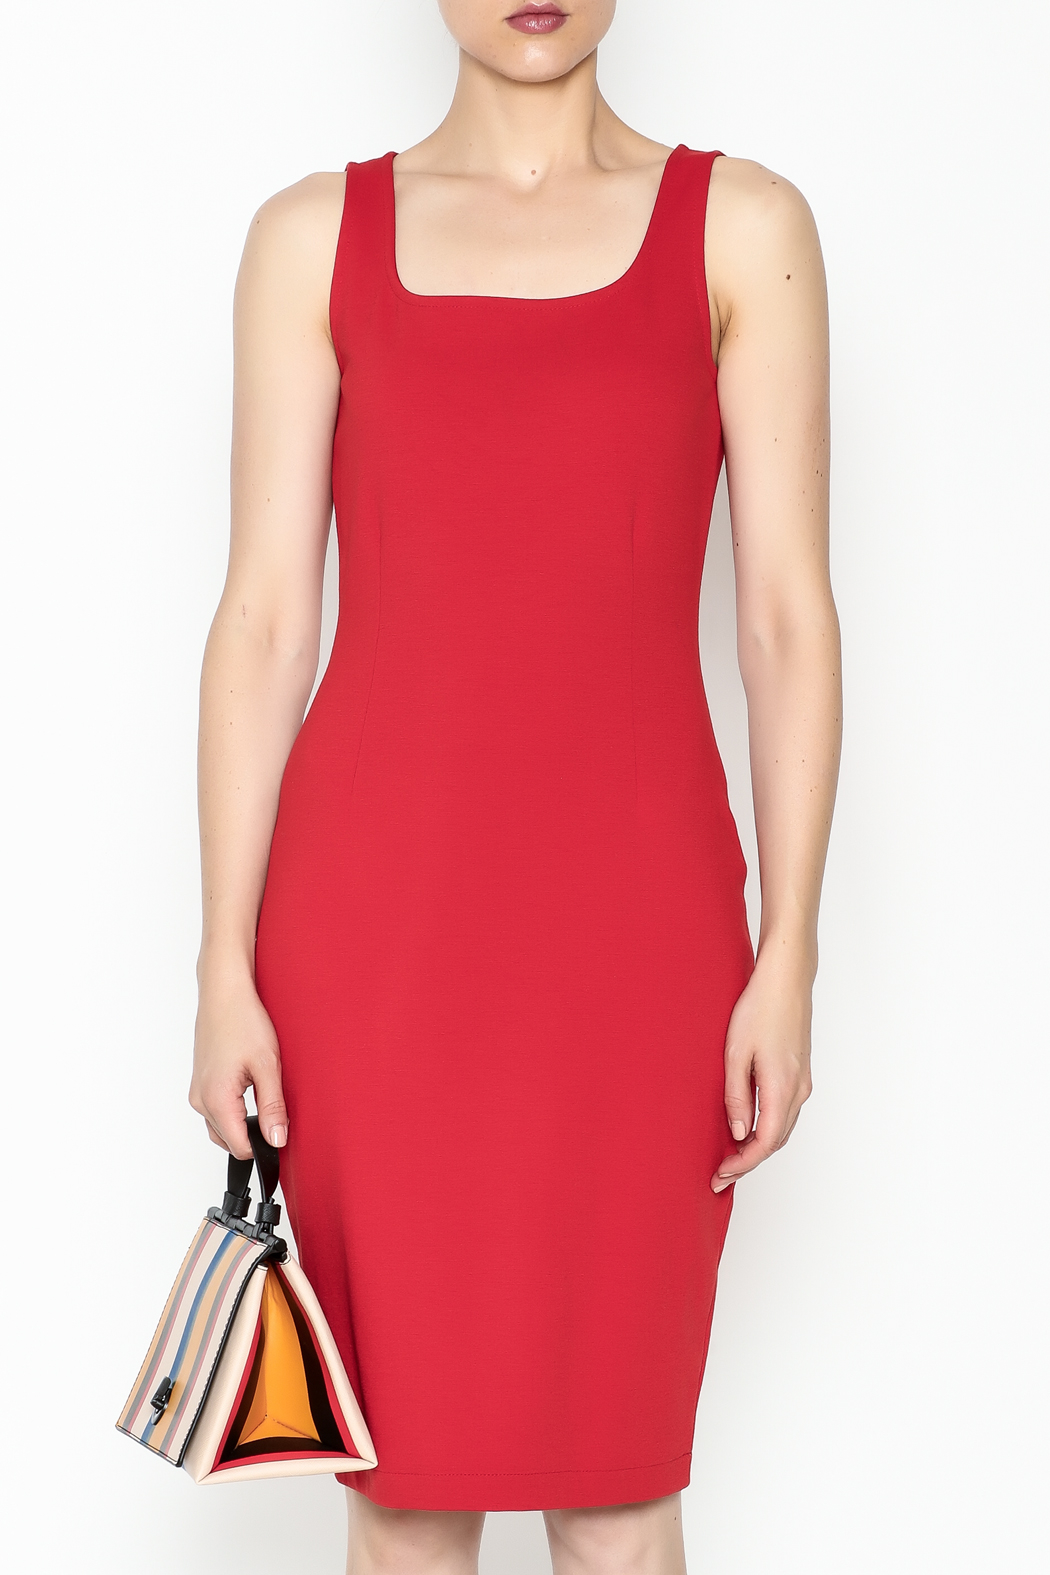 26Line by MLNK Poppy Sheath Dress - Main Image